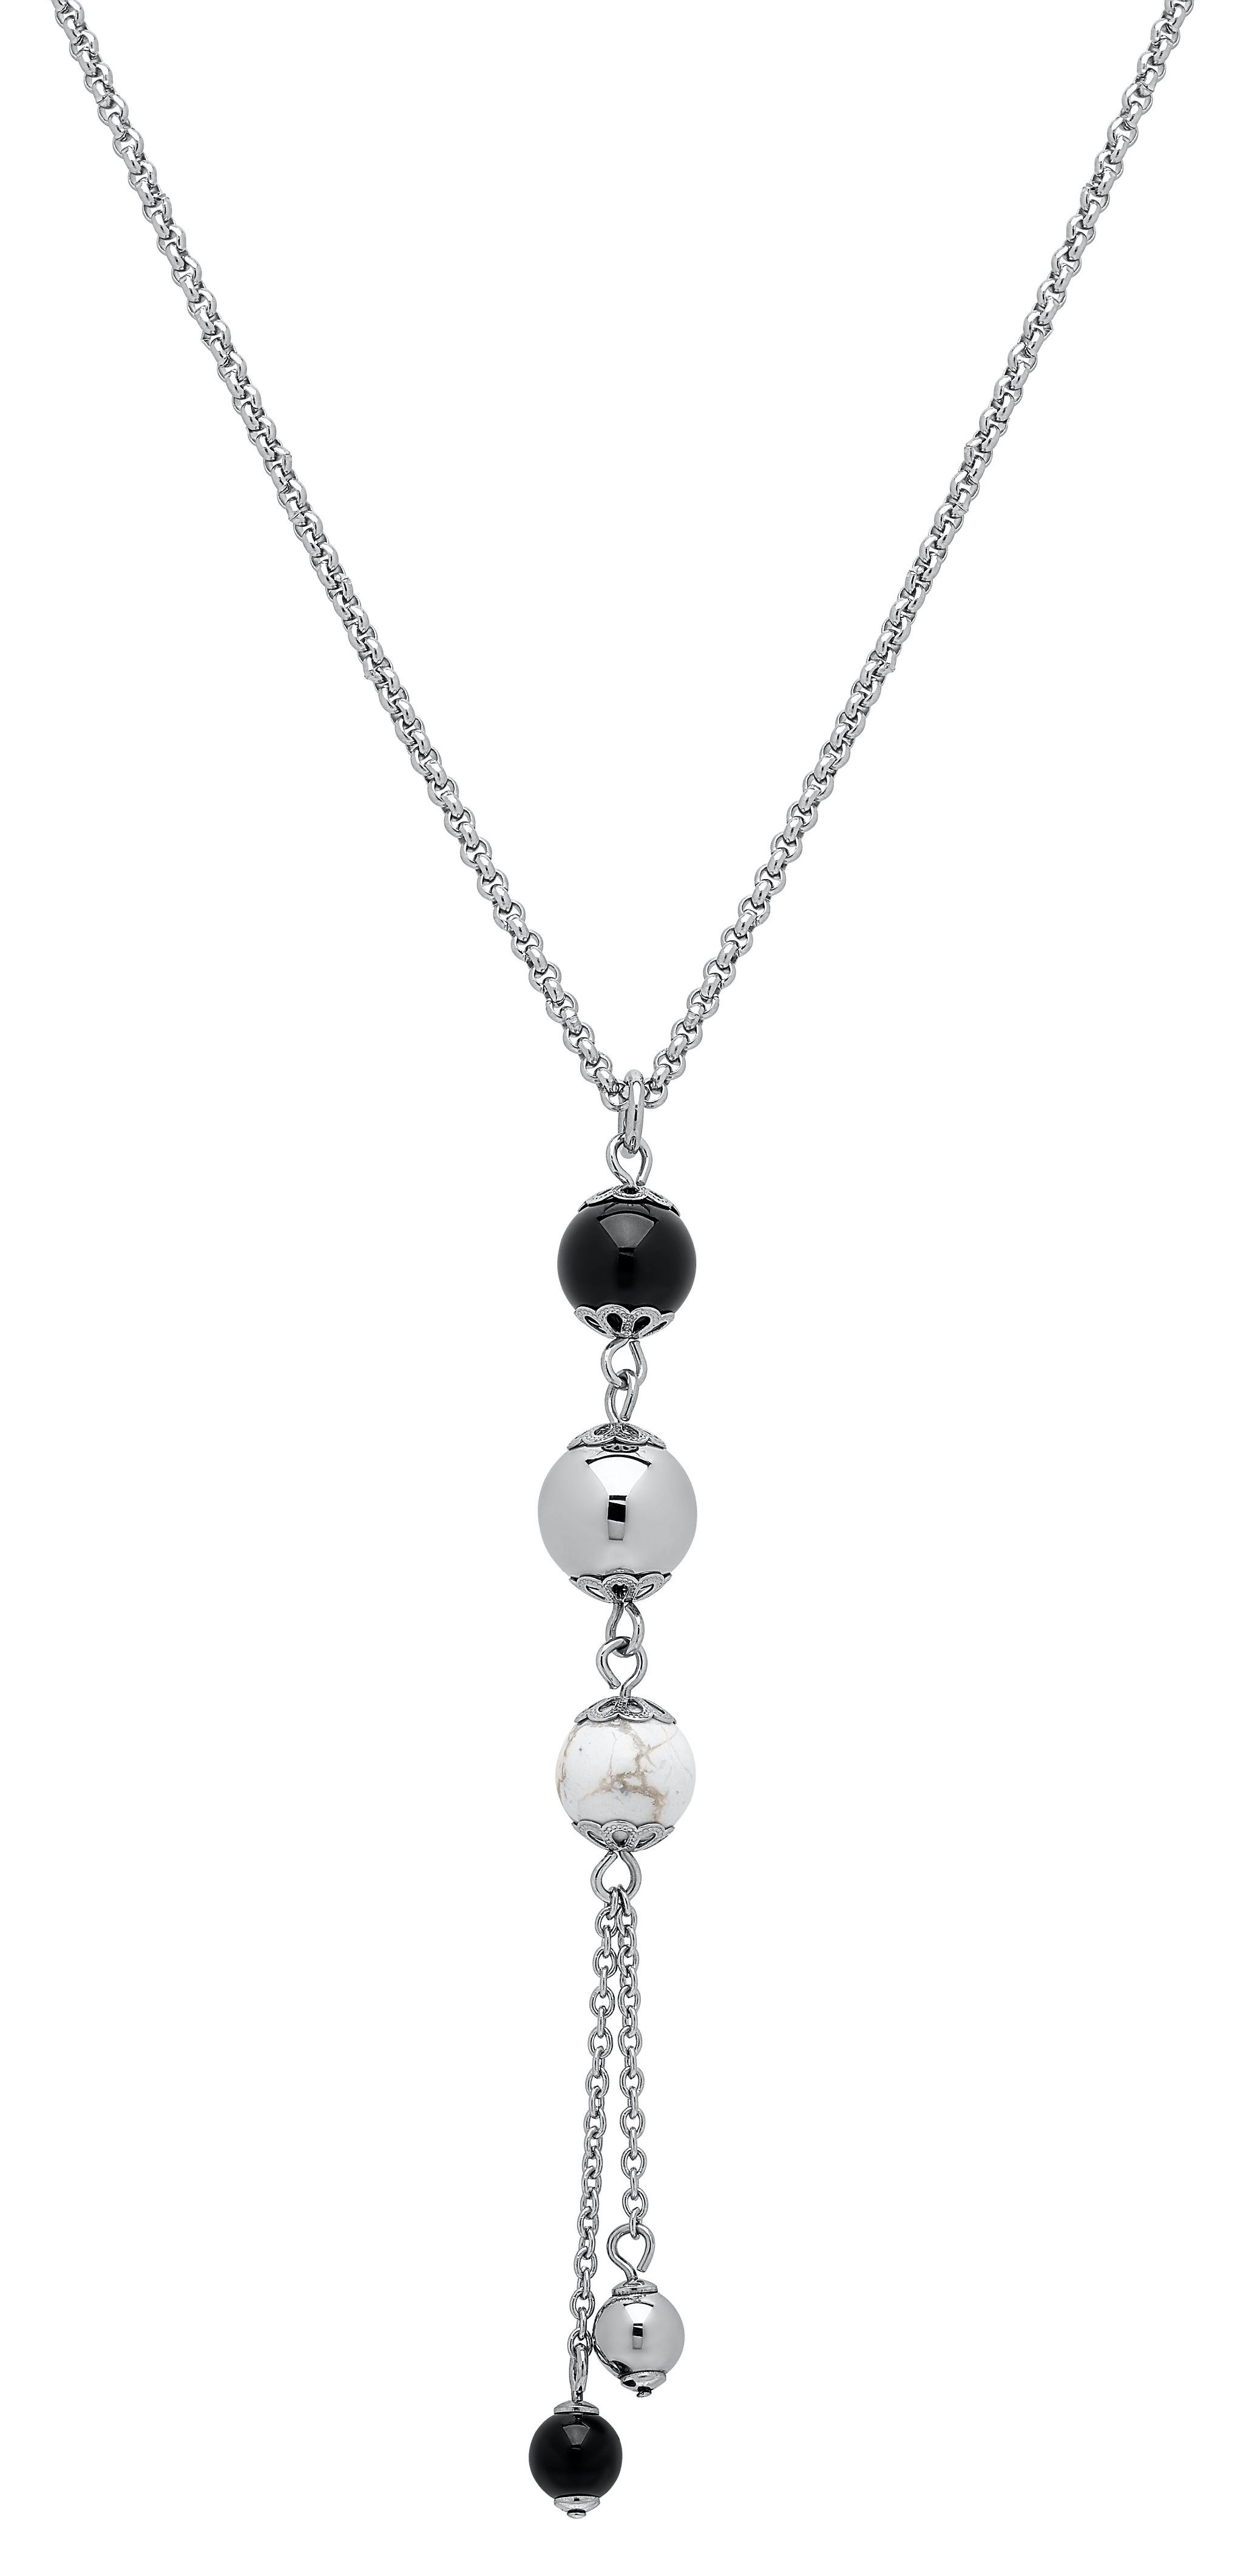 Triple Bead Lariat Fashion Necklace in Stainless Steel